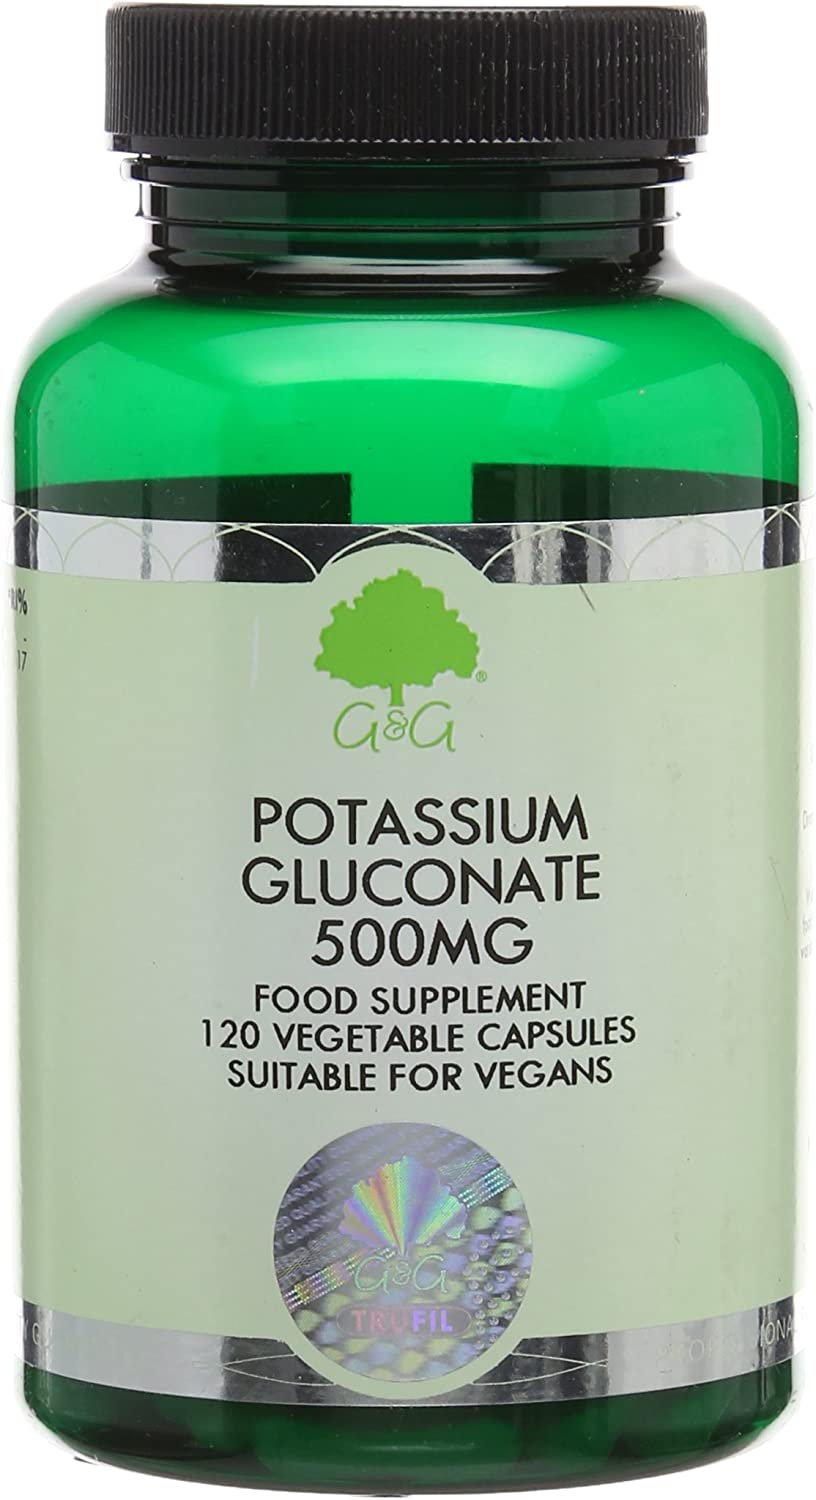 G&G Vitamins 500mg Potassium Gluconate Capsules